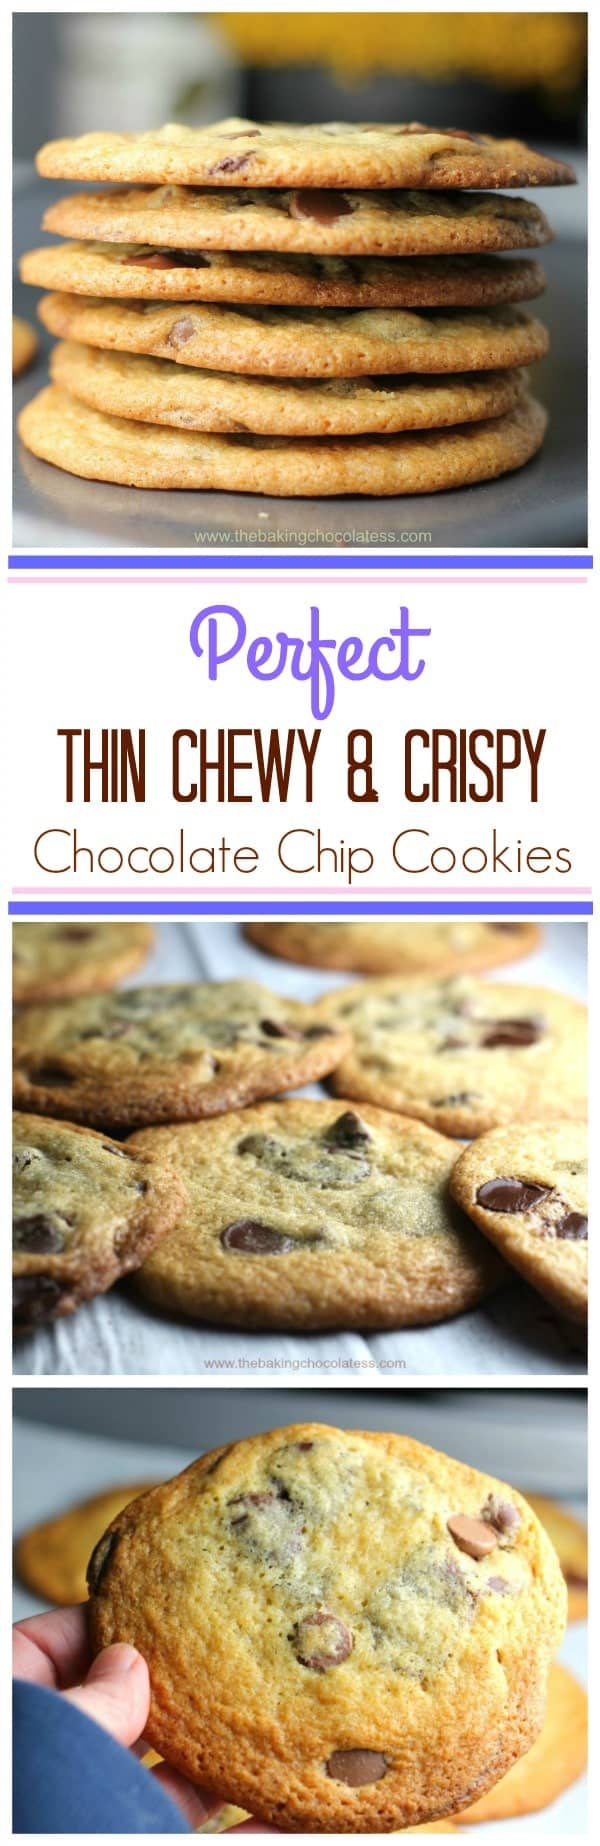 Best Thin & Crispy Chocolate Chip Cookies - These sinfully, delicious Perfect Thin & Crispy Chocolate Chip Cookies are exactly what they are! Perfect Thin & Crispy and you won't want to let these get out of your sight! #thin cookies #chocolate chip